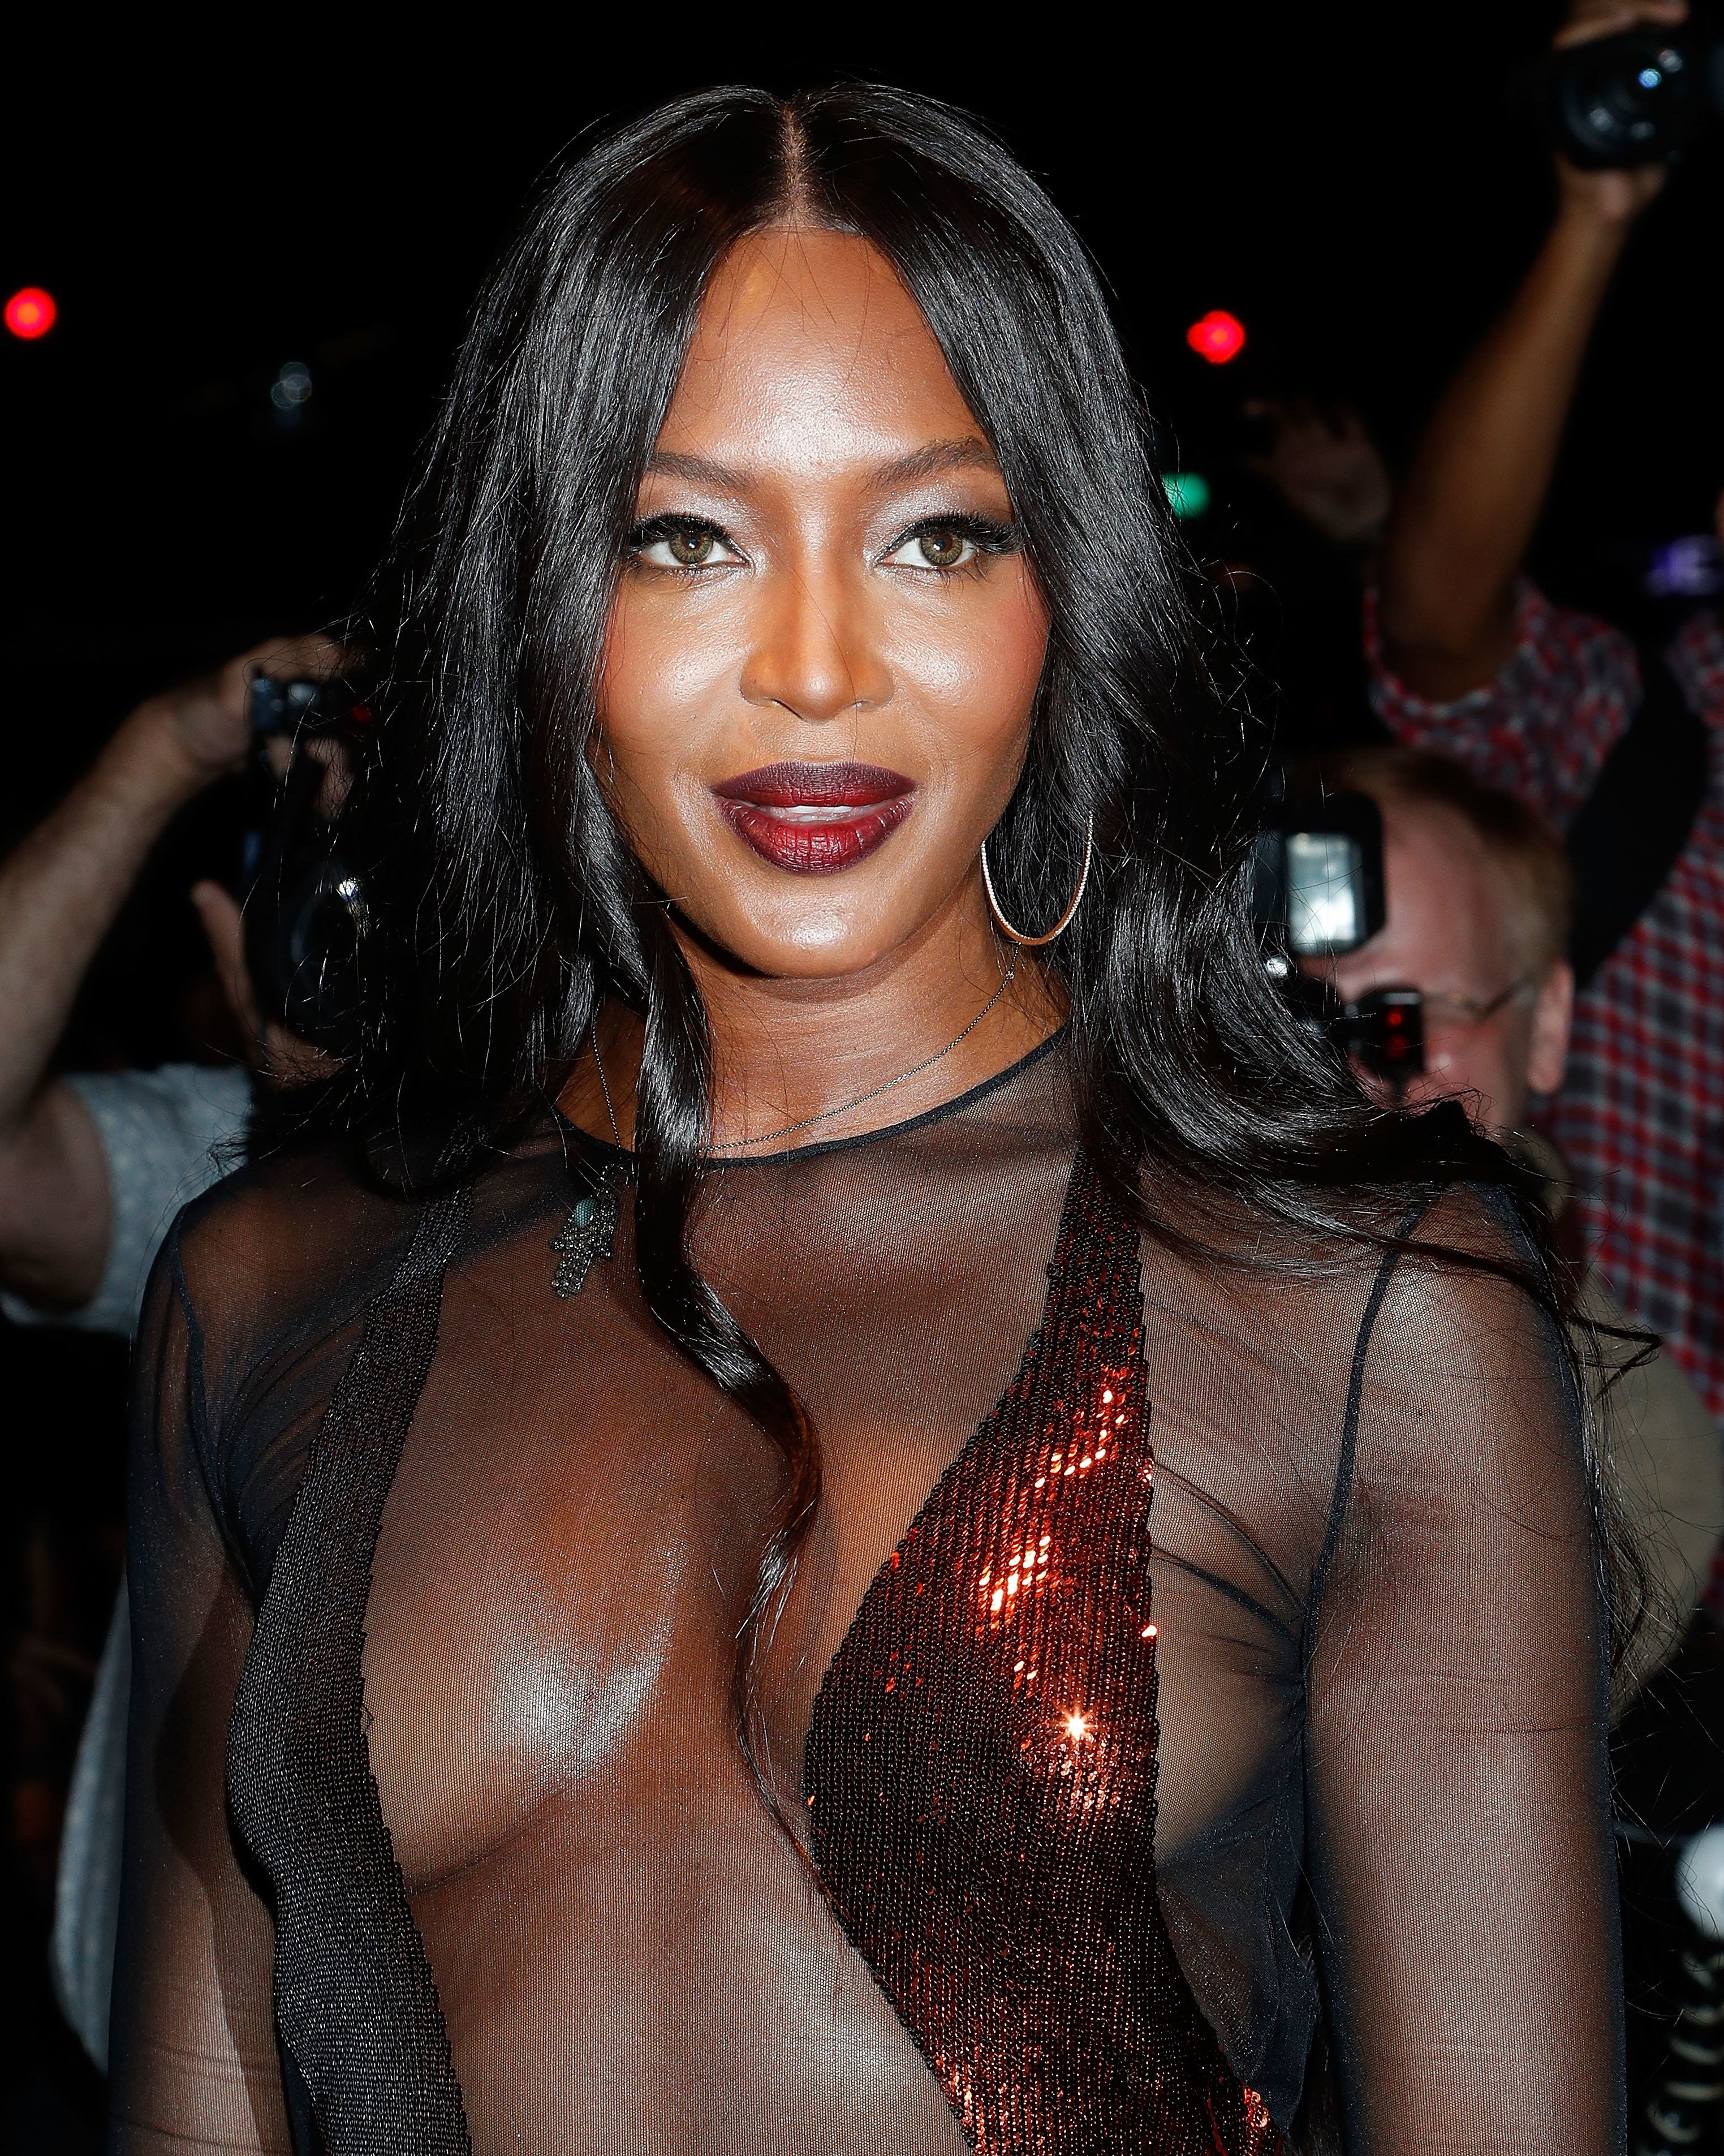 NEW YORK, NY - SEPTEMBER 07:  Model Naomi Campbell attends the Tom Ford Fall 2016 fashion show during New York Fashion Week September 2016 at The Four Seasons on September 7, 2016 in New York City.  (Photo by Taylor Hill/FilmMagic)